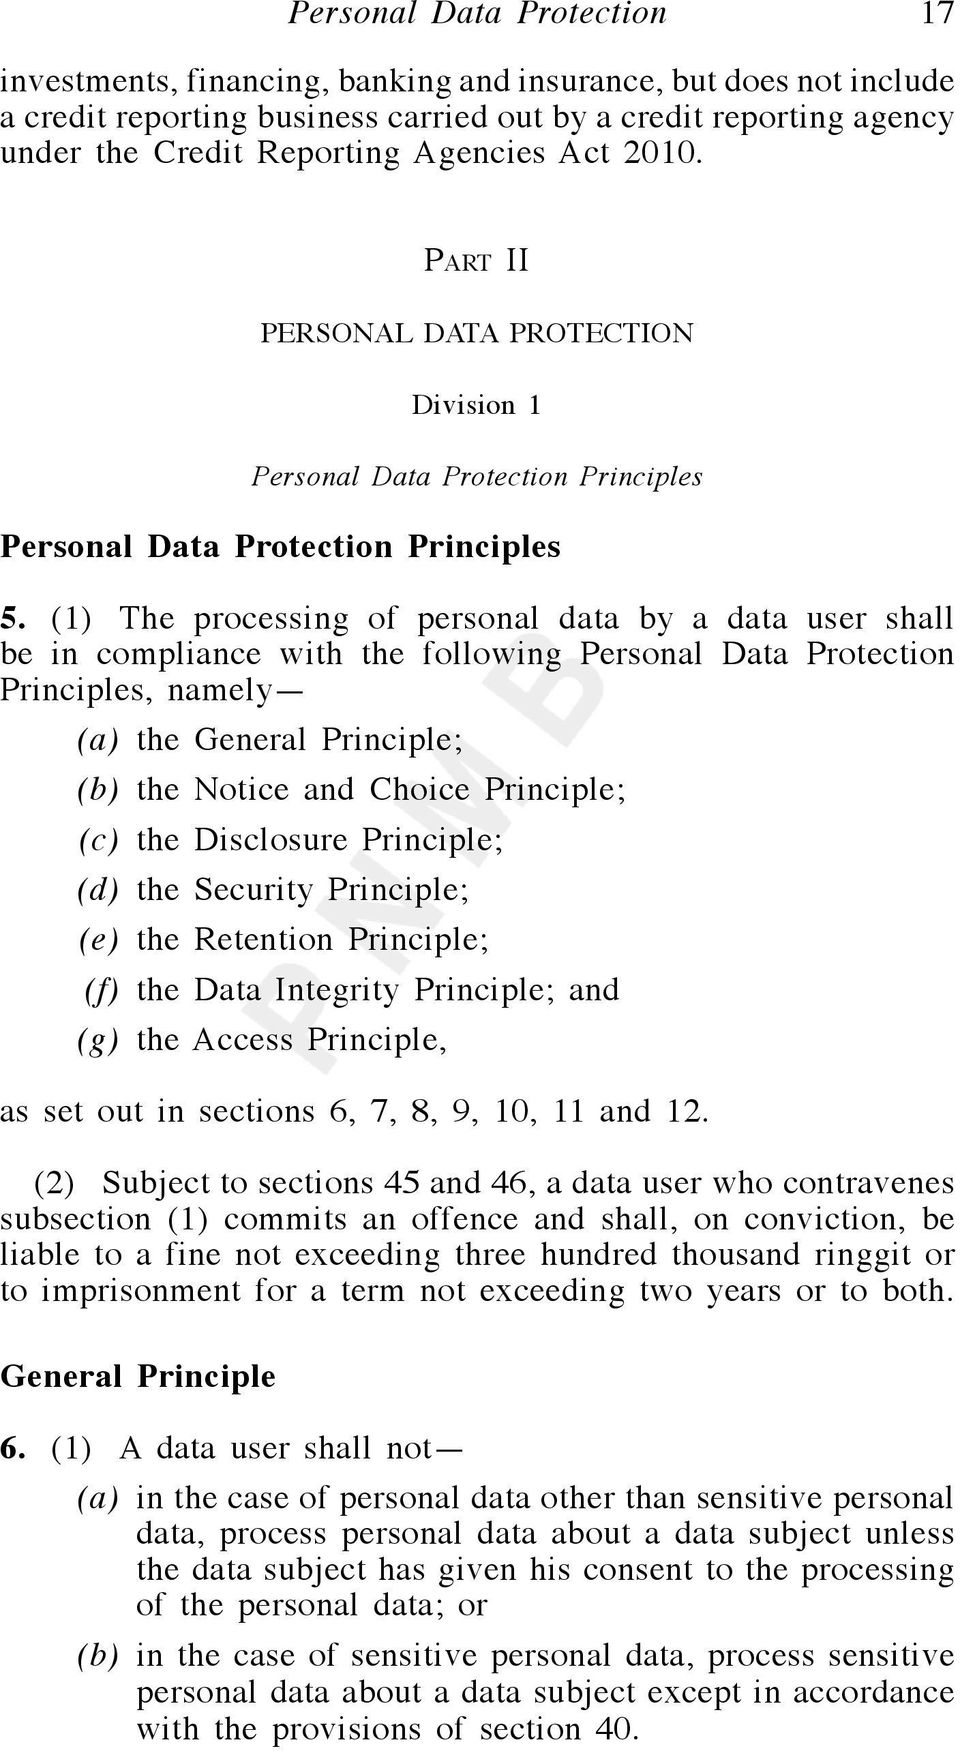 (1) The processing of personal data by a data user shall be in compliance with the following Personal Data Protection Principles, namely (a) the General Principle; (b) the Notice and Choice